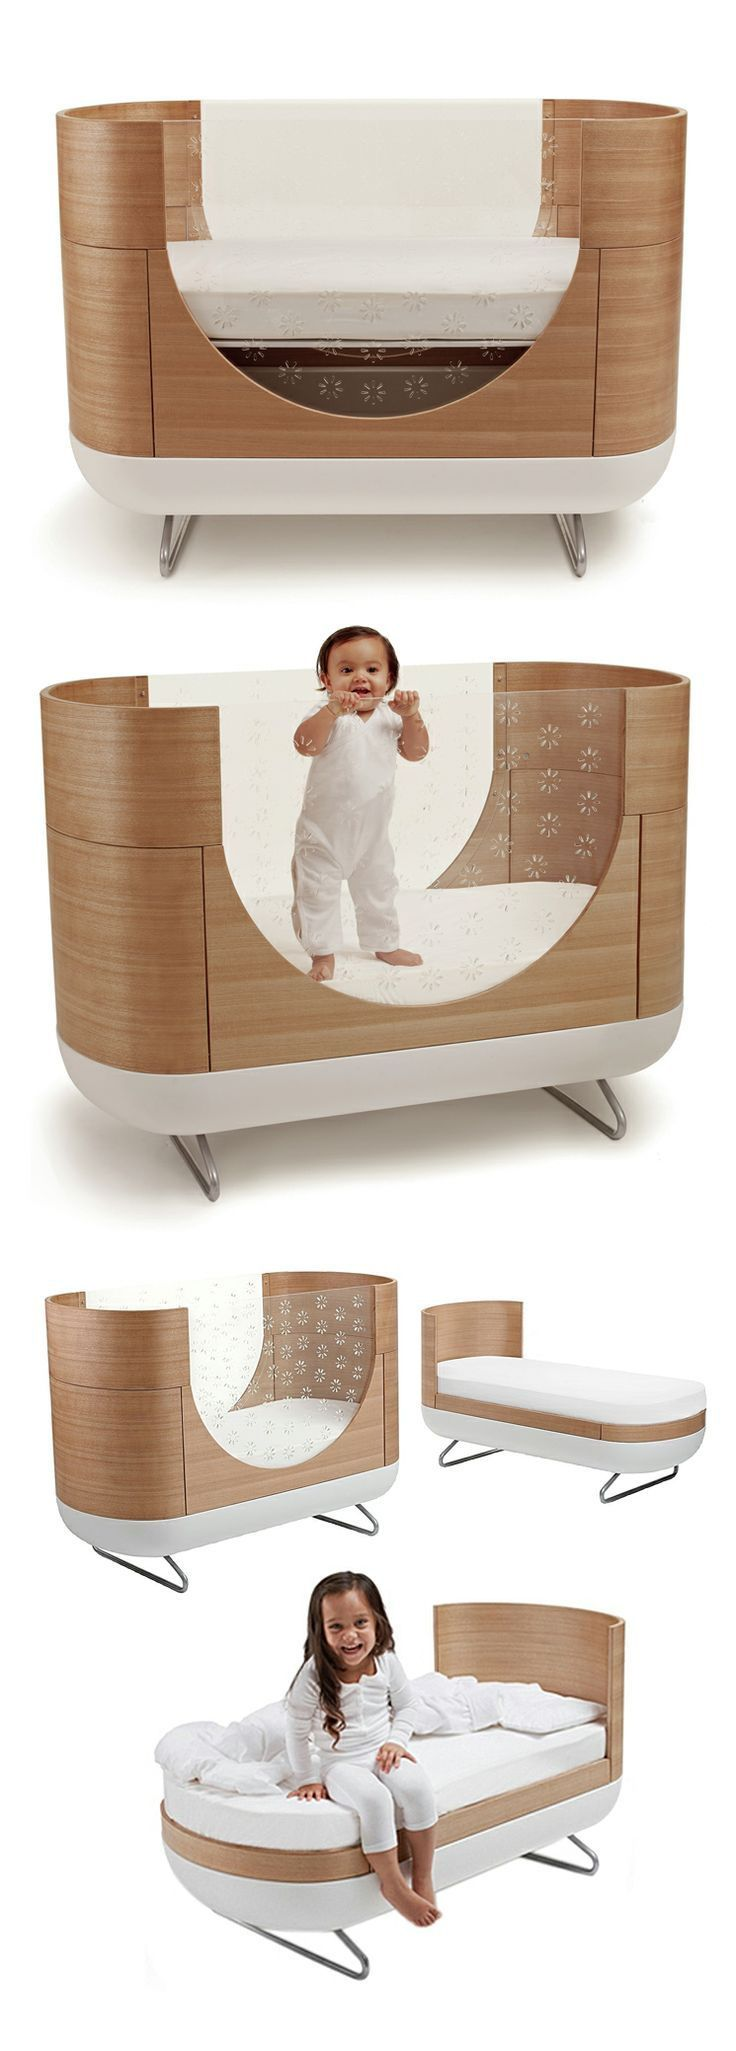 Best Modern Baby Crib That Converts Into A Toddler Bed 640 x 480